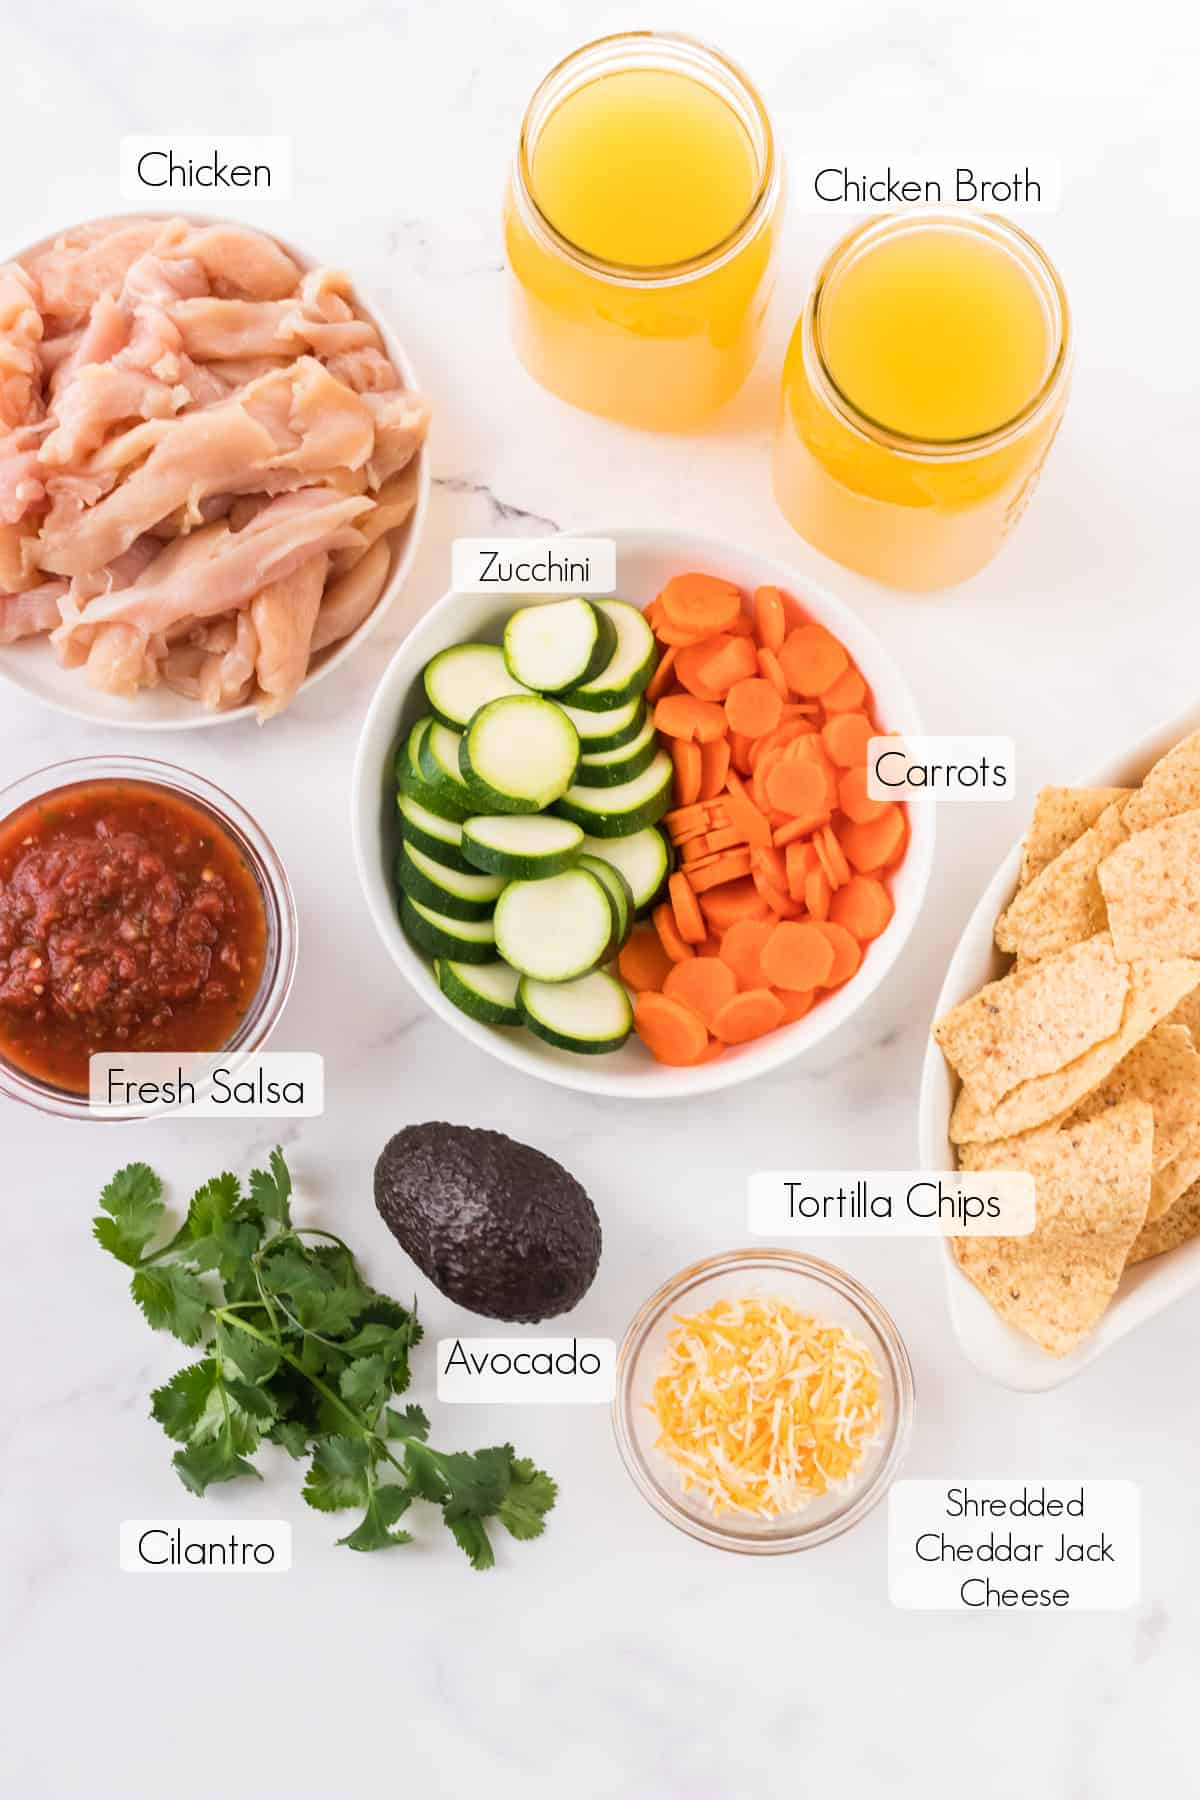 Labeled ingredients for Easy Chicken Tortilla soup recipe.